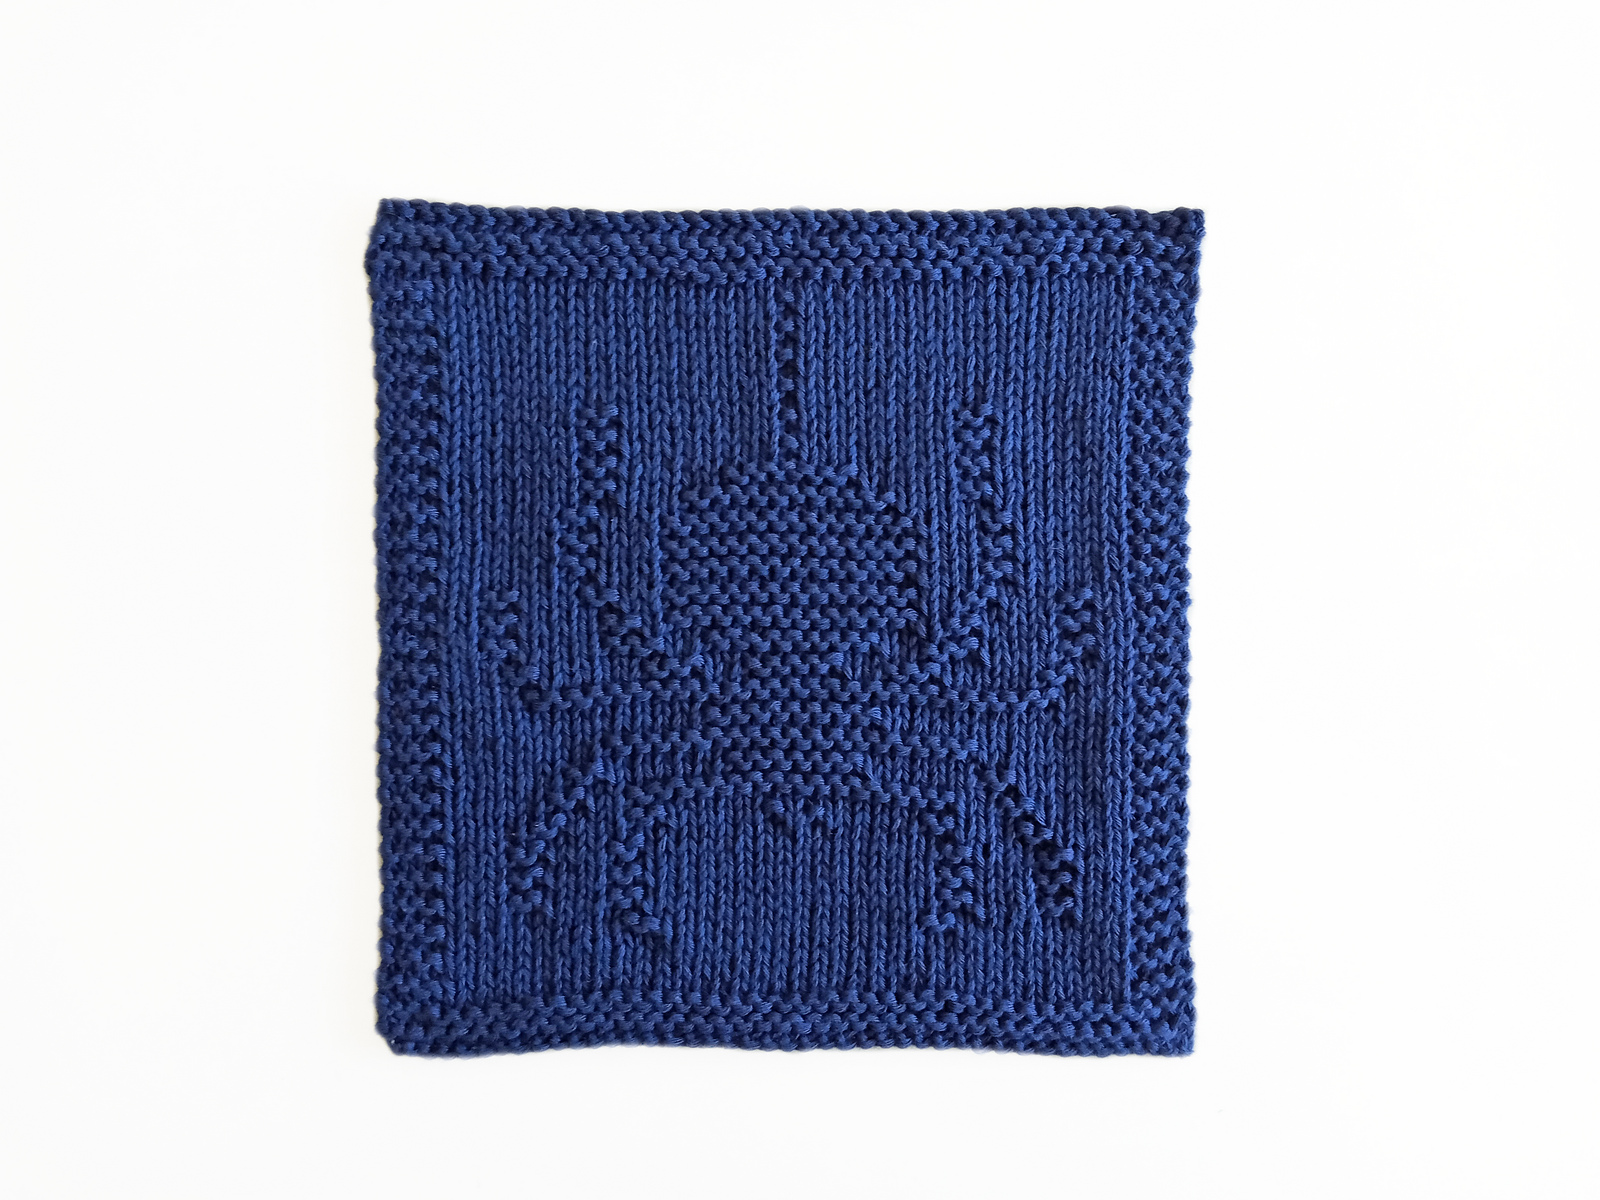 Halloween spider hand knitted washcloth pattern in knits and purls